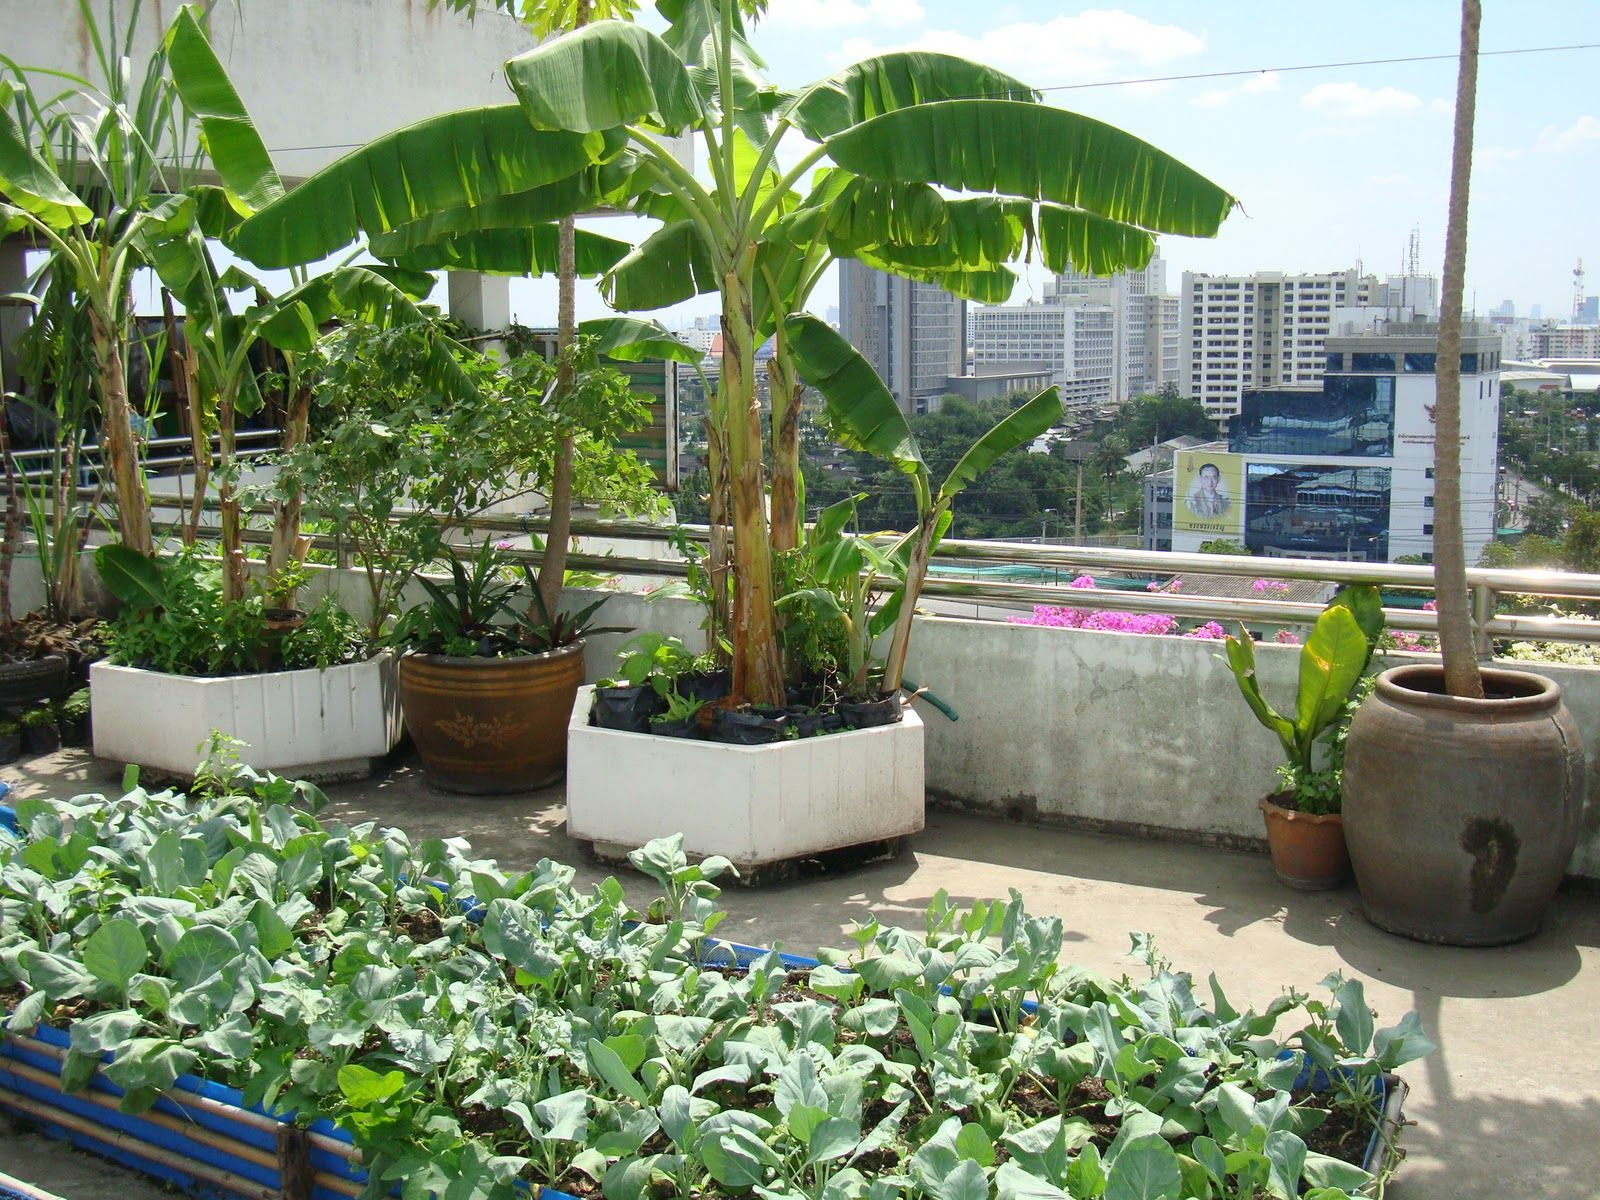 Rooftop garden creative landscape garden serenity - How to build an outdoor kitchen a practical terrace ...